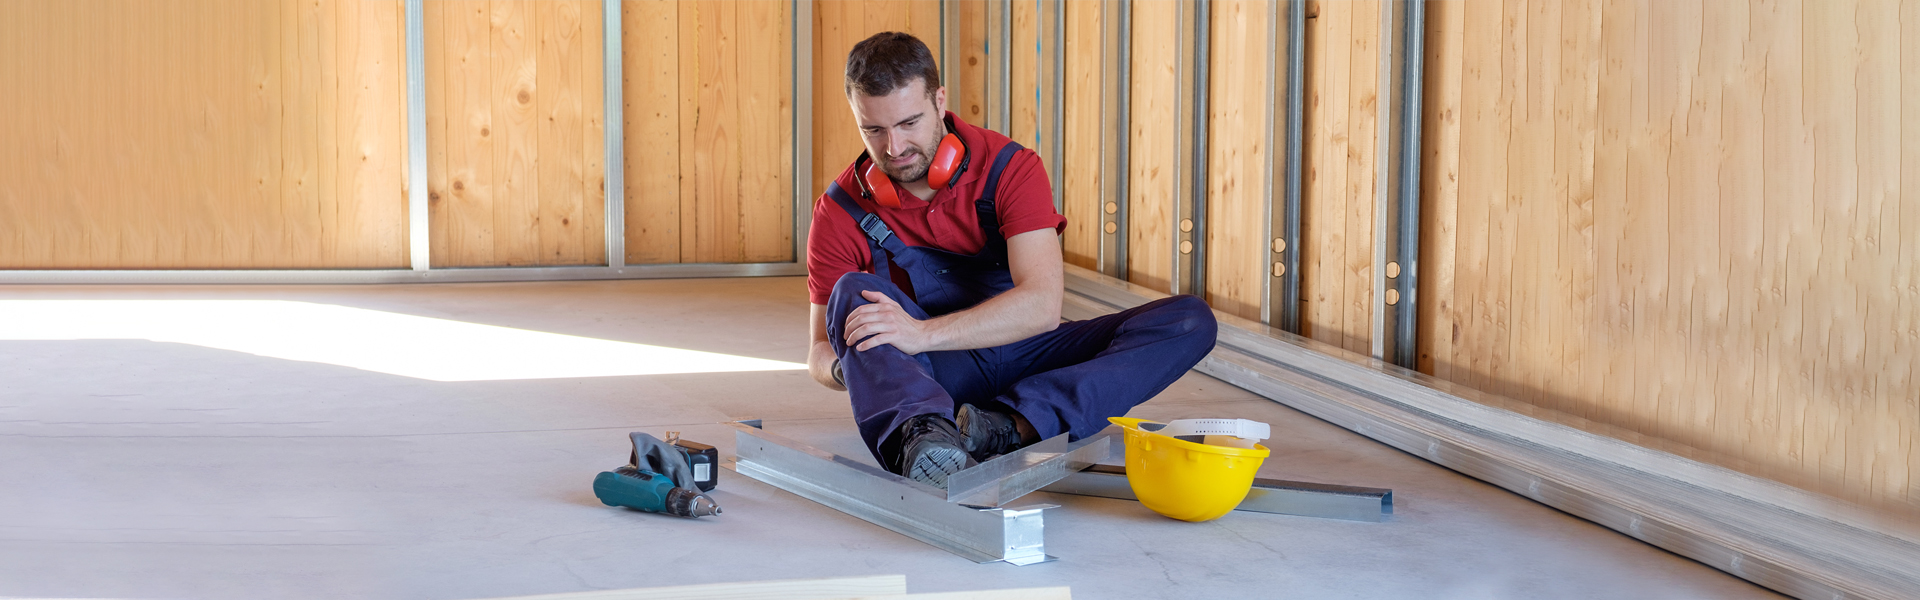 Workplace accidents or falls emergency care in Hosuston, TX